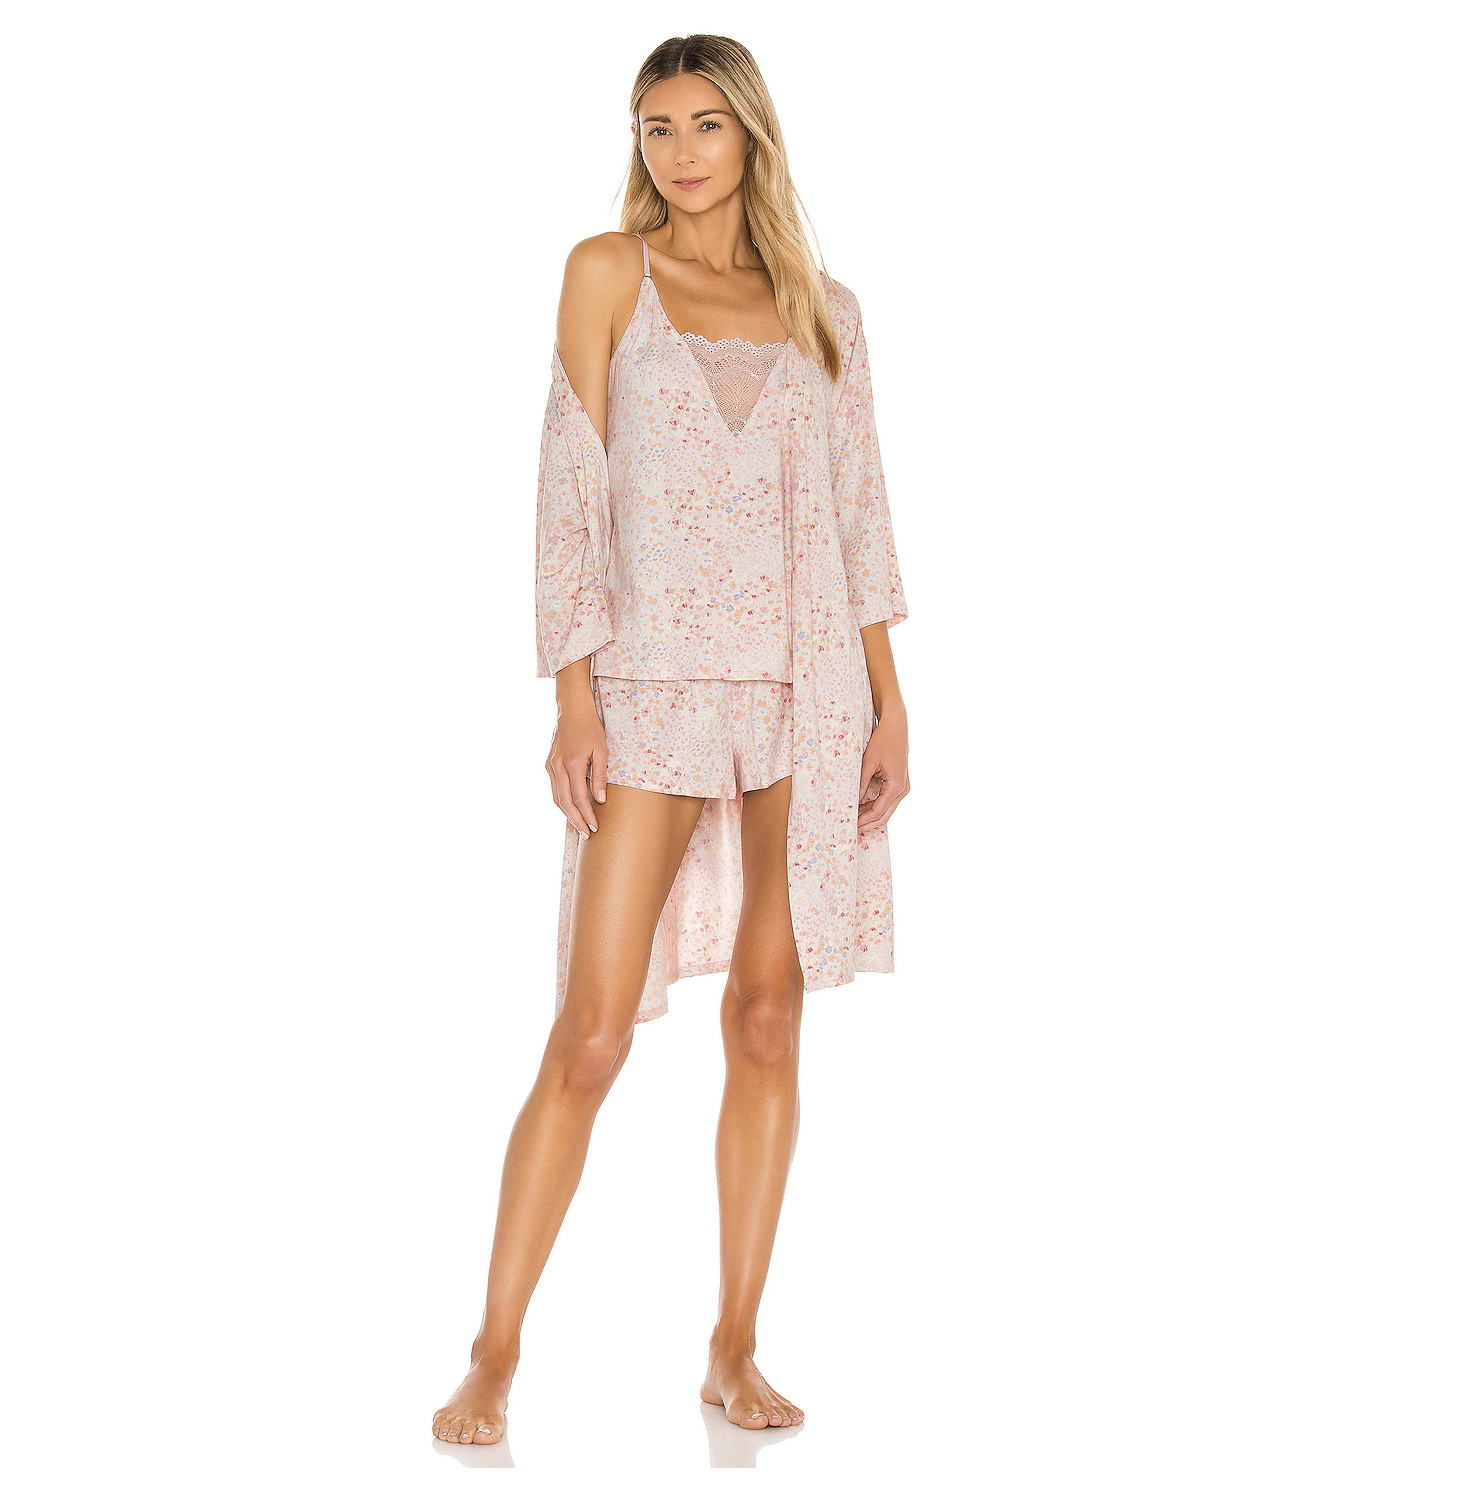 Flora Nikrooz Floral Travel Set from Revolve, pajama set gift ideas, Revolve pajama set, travel pjs set, pajamas and robe set, Mother's Day gift ideas, Mother's Day gift guide